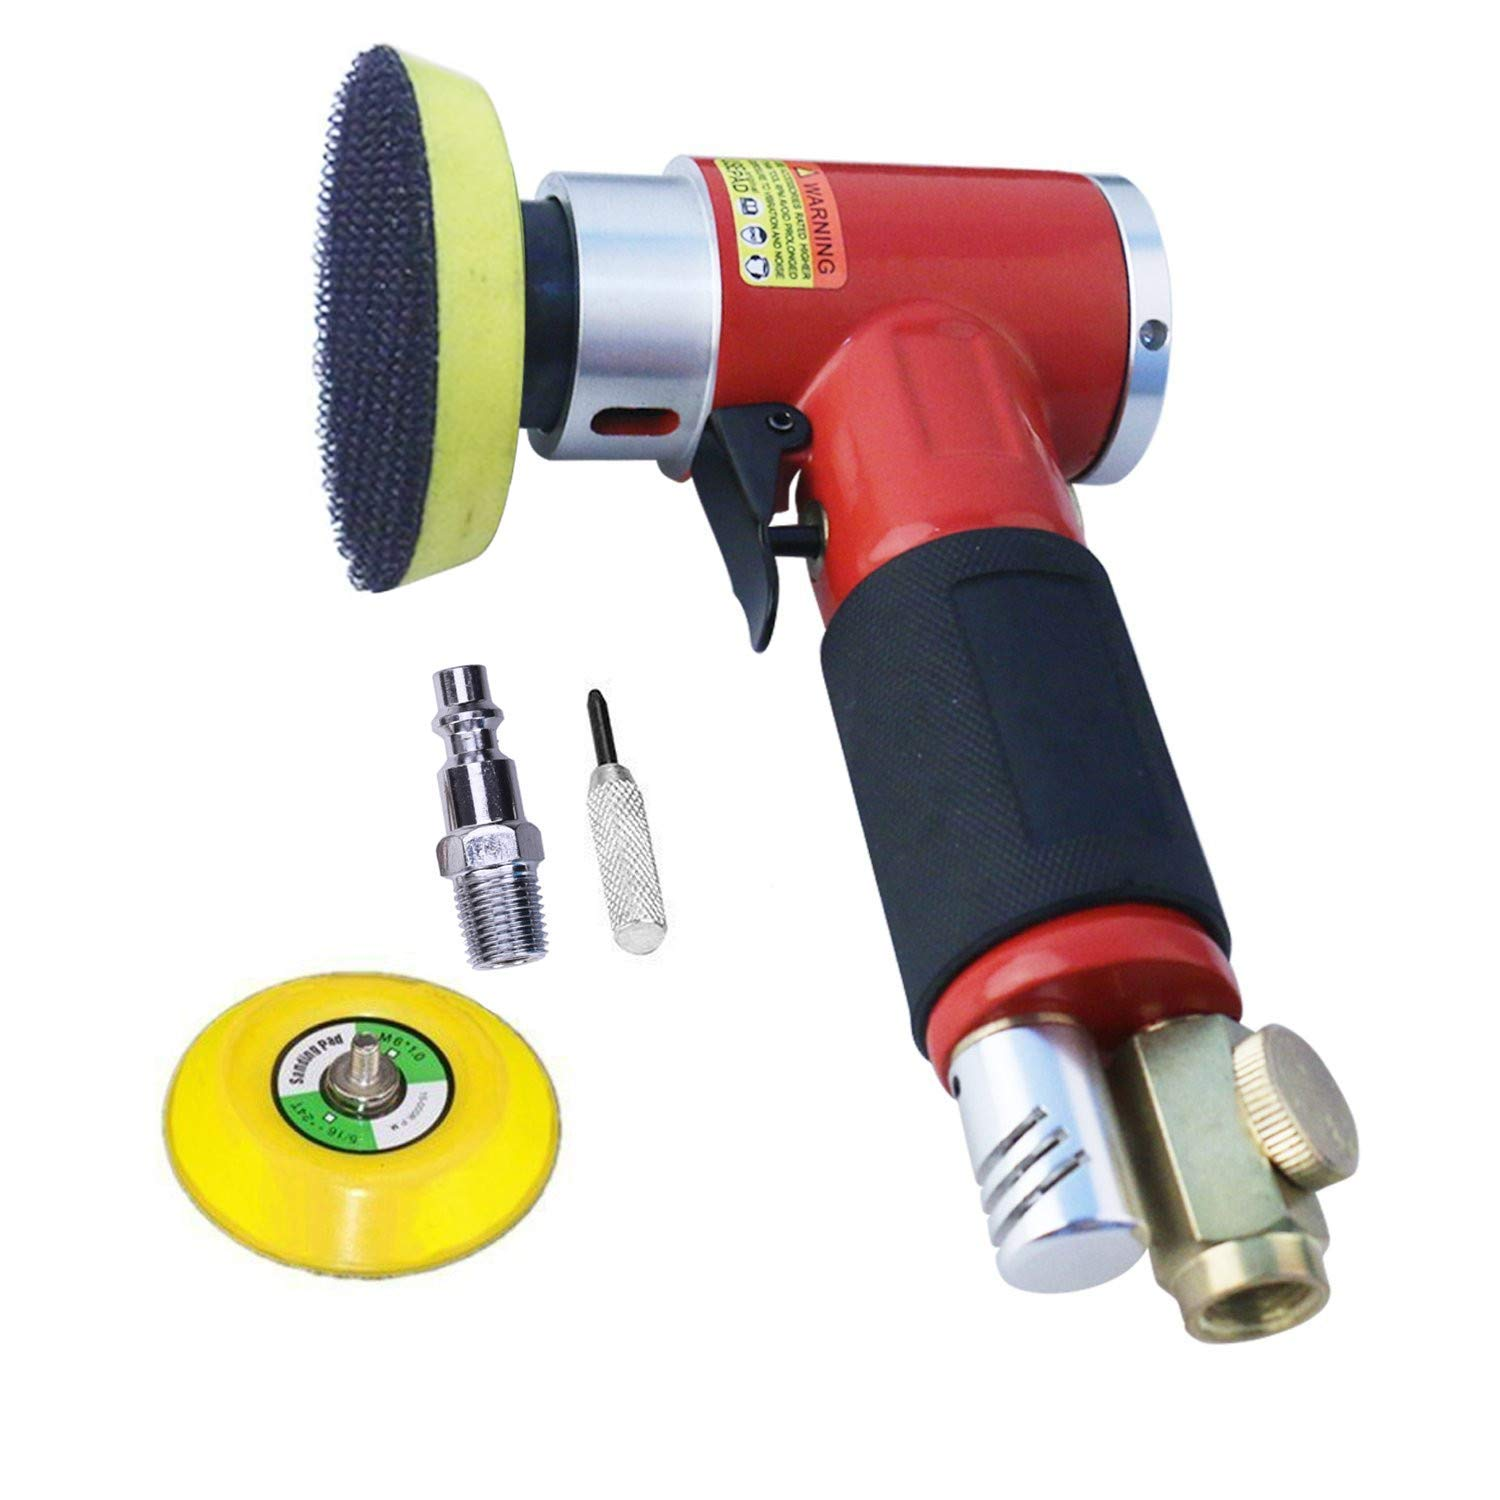 The Cheapest Price 2inch 3inch Mini Air Sander Kit Pad Eccentric Orbital Dual Action Pneumatic Polisher Polishing Buffing Tools For Auto Body Wor Durable Service Power Tool Accessories